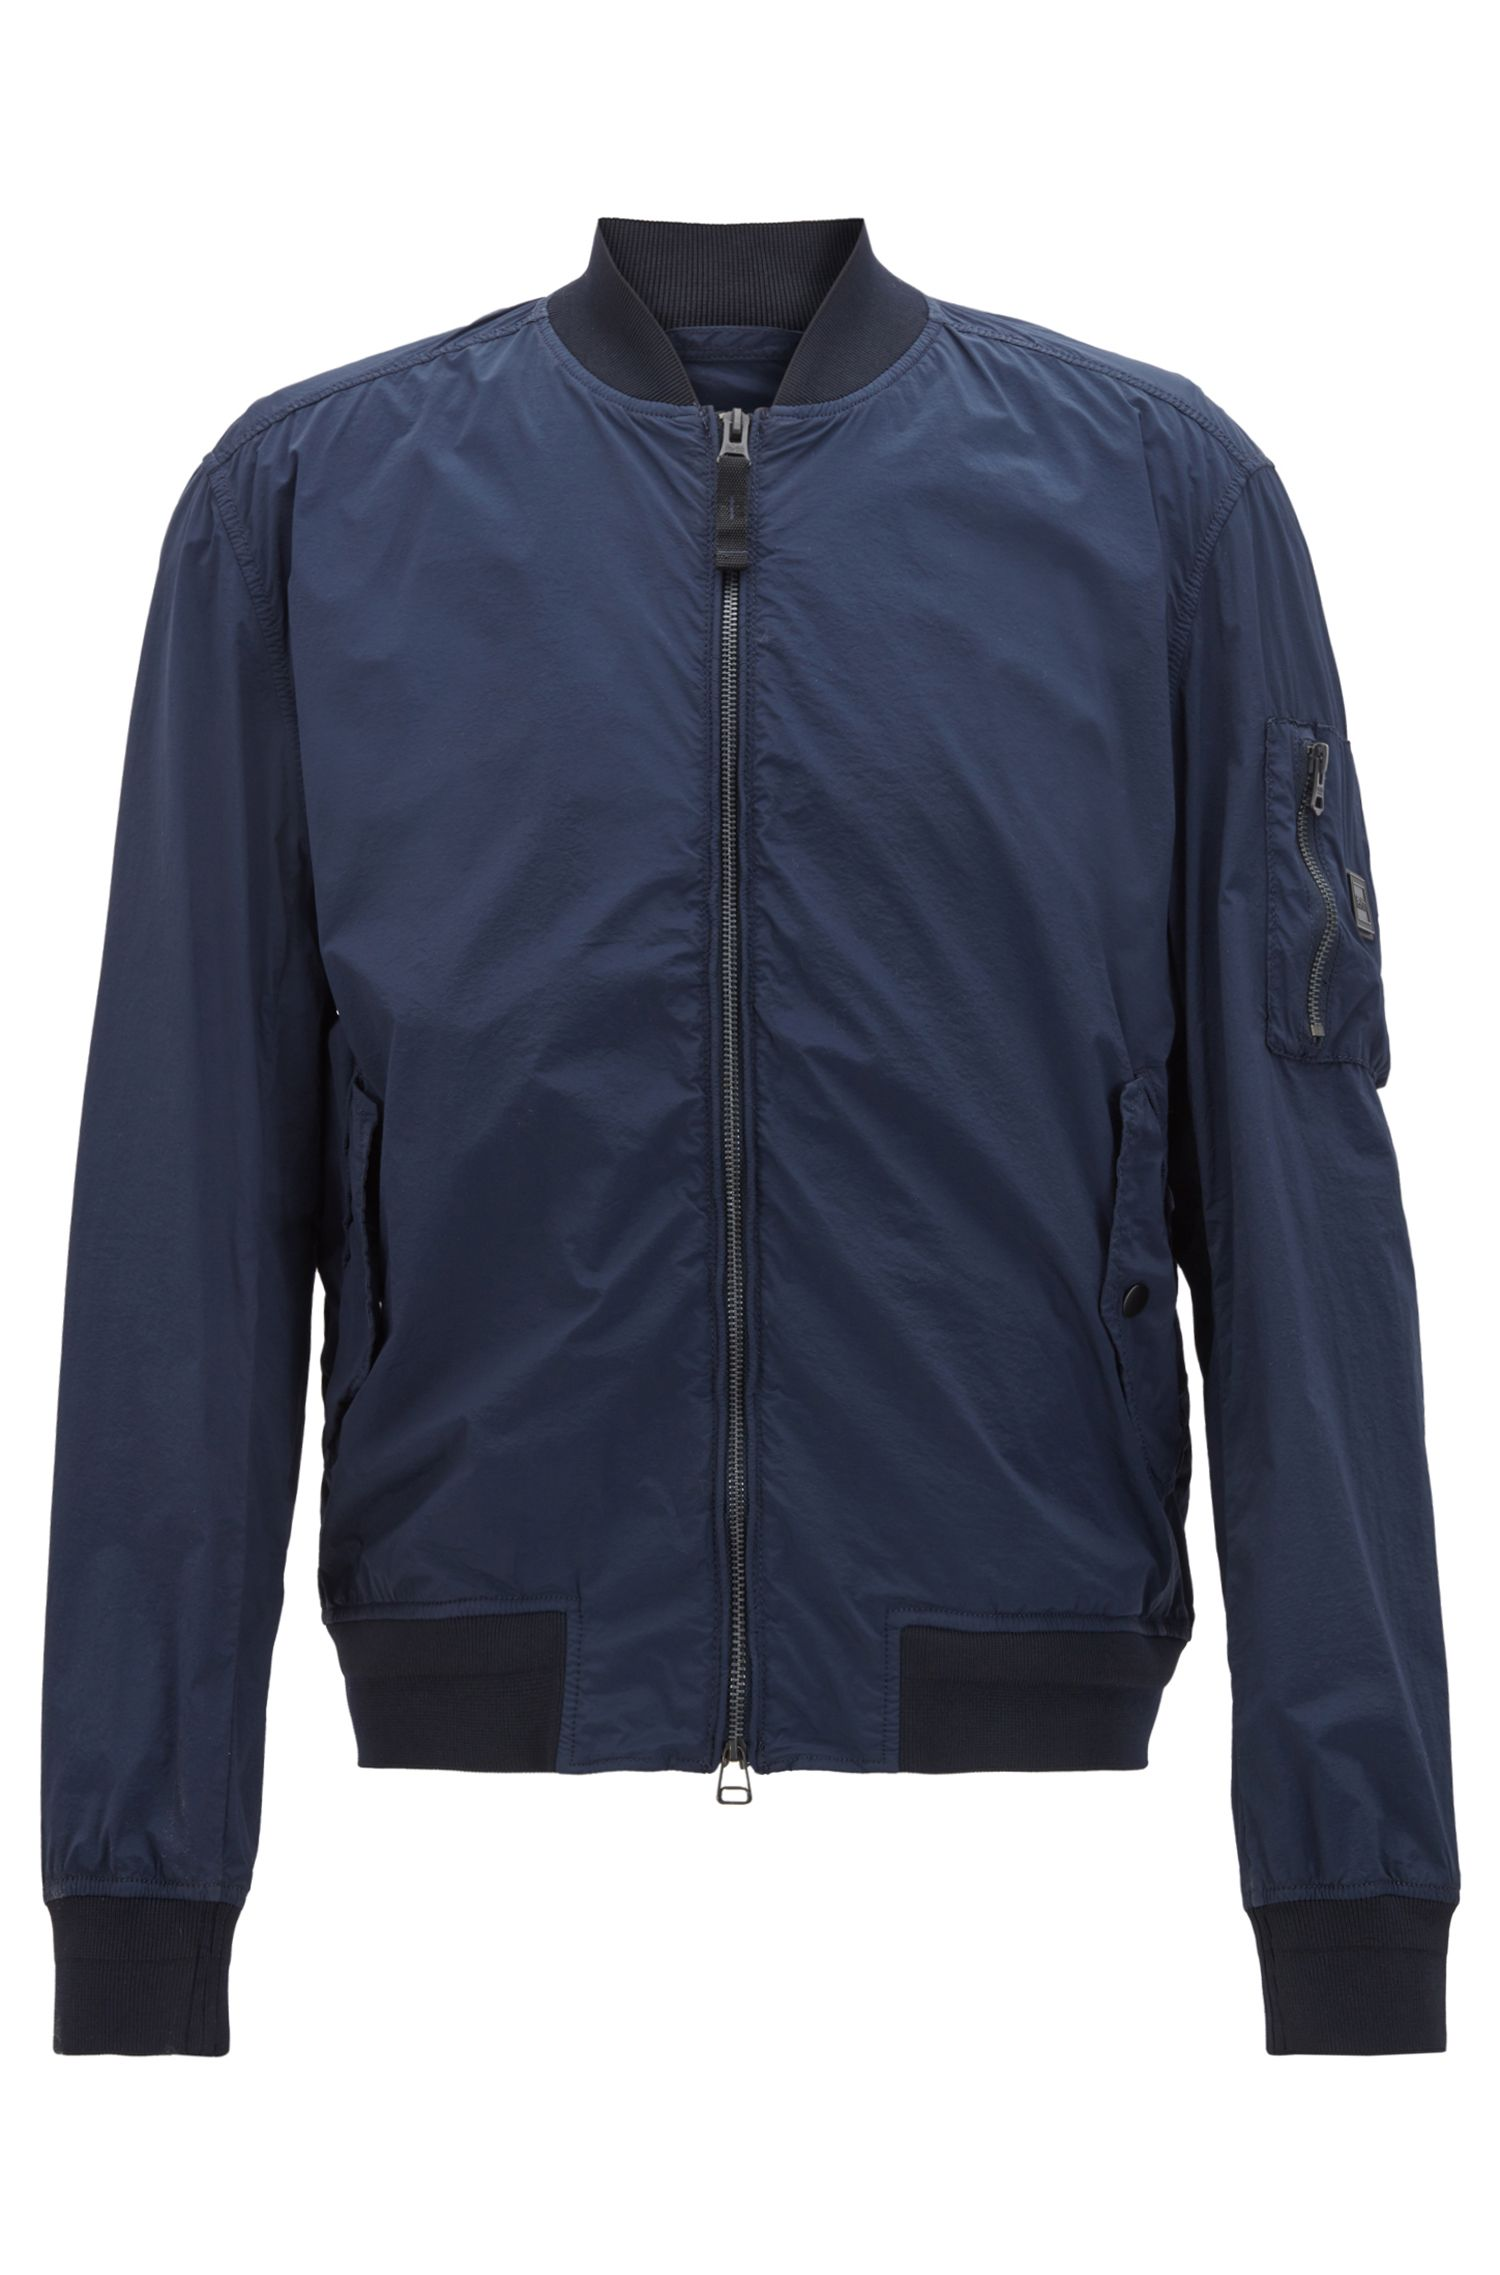 Bomber-style jacket in technical stretch fabric